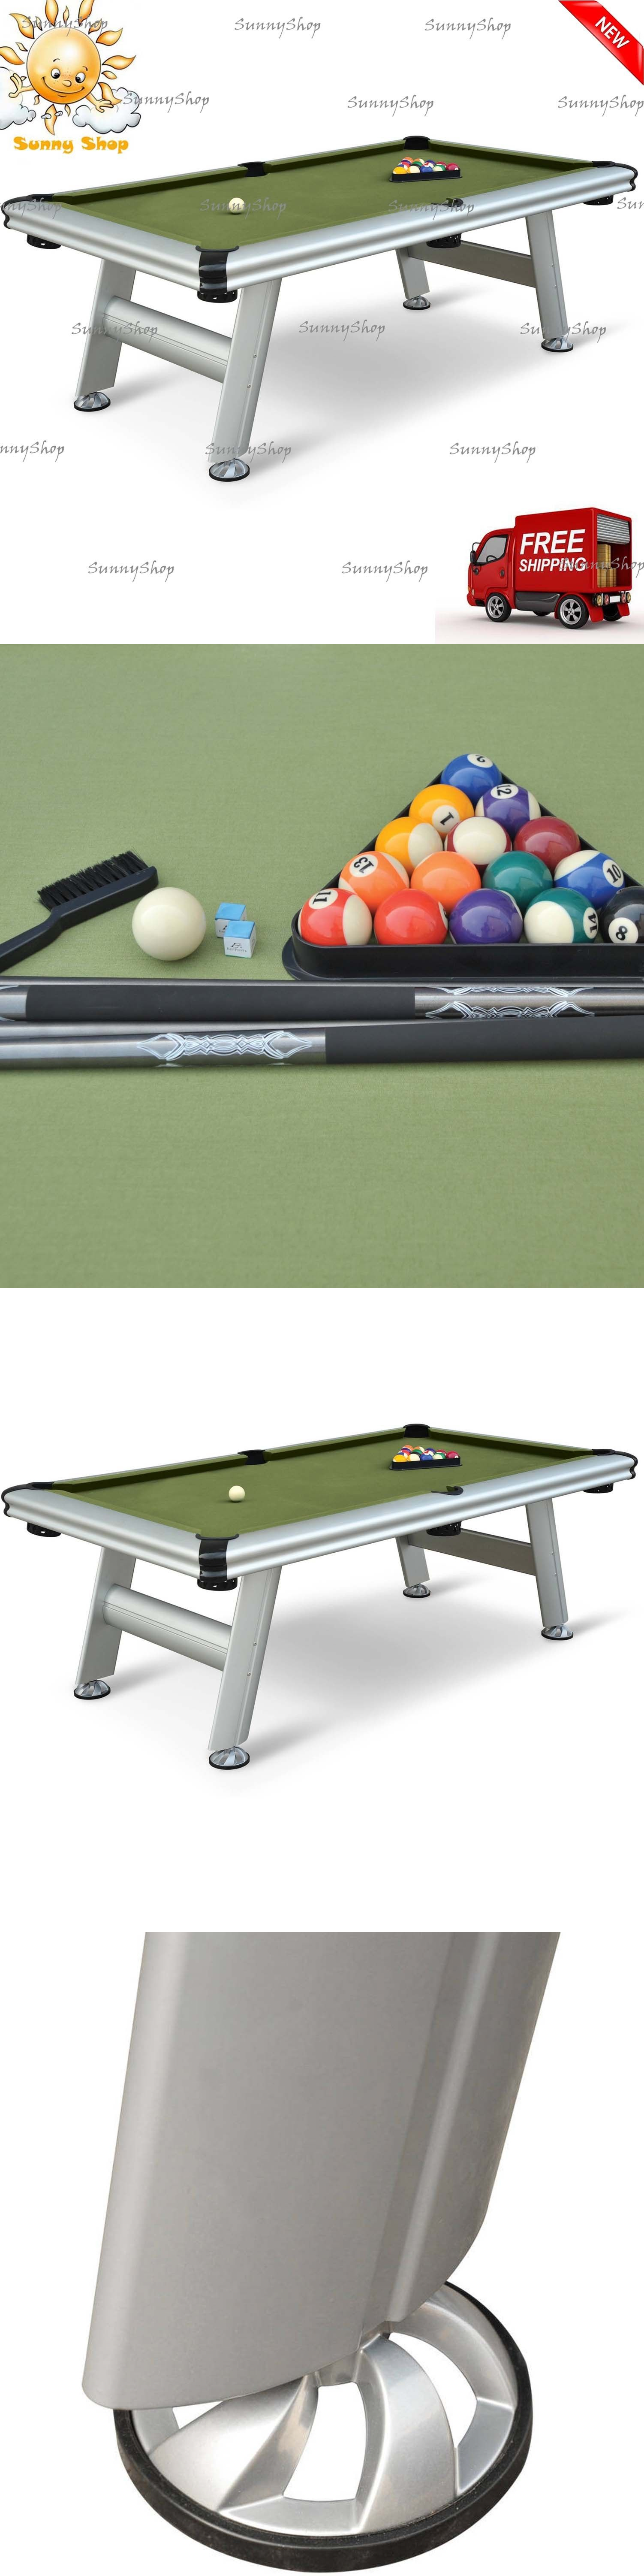 Tables Outdoor Billiard Pool Table Weather Resistant - Outdoor pool table ebay